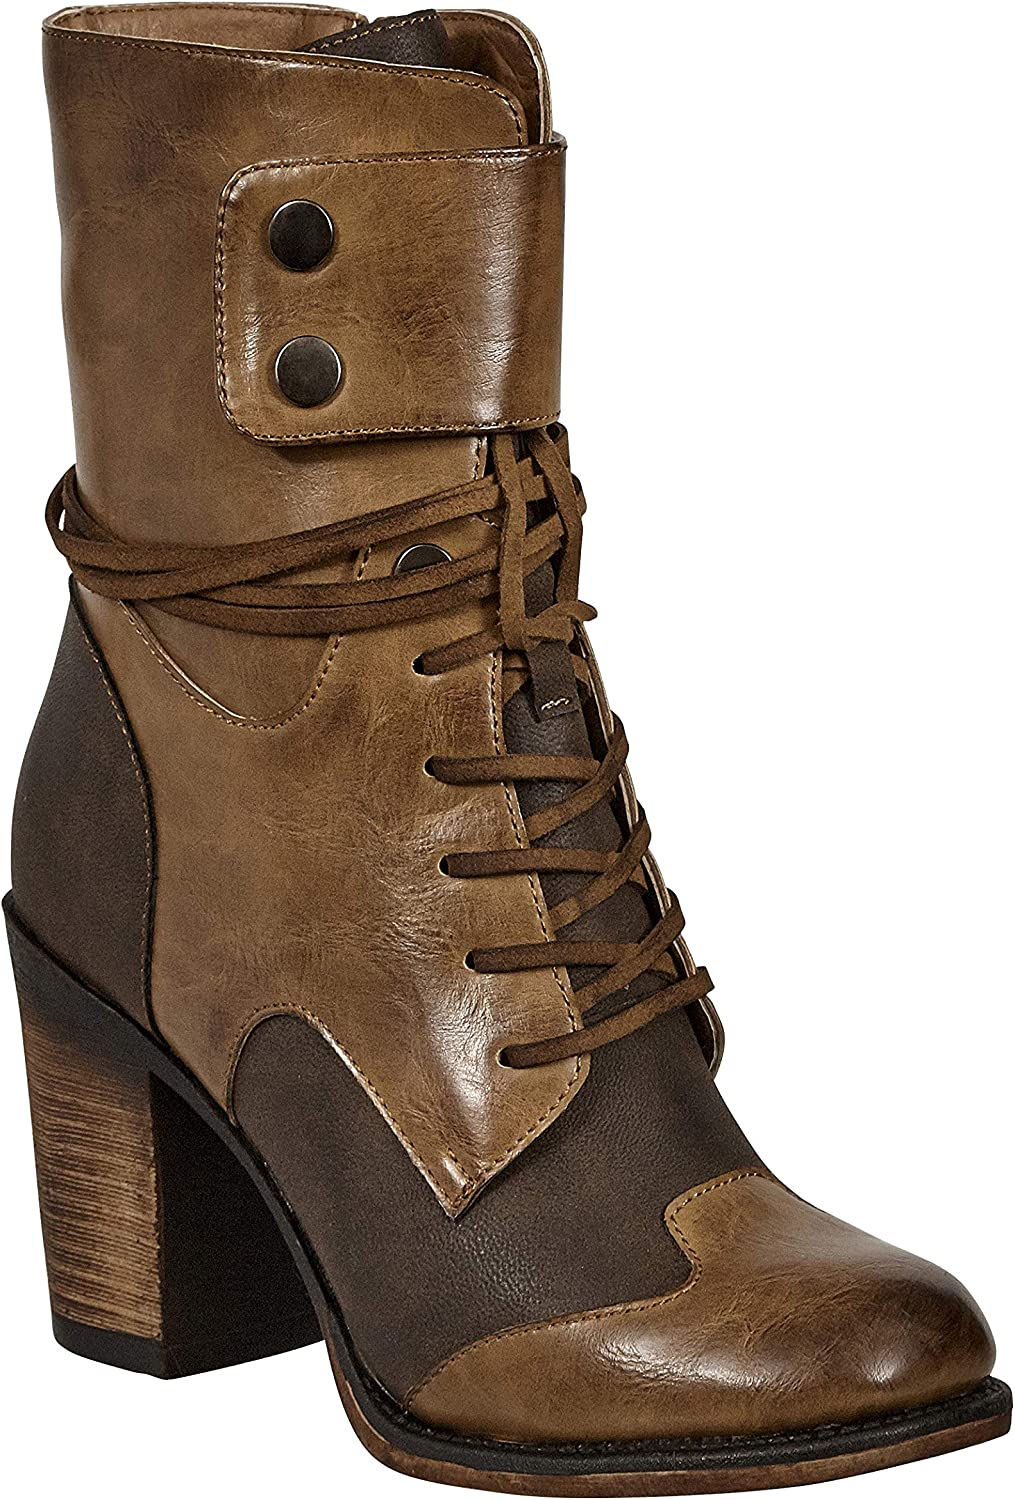 MVE shoes Women's Mid Calf Boots with Distressed PU Upper,